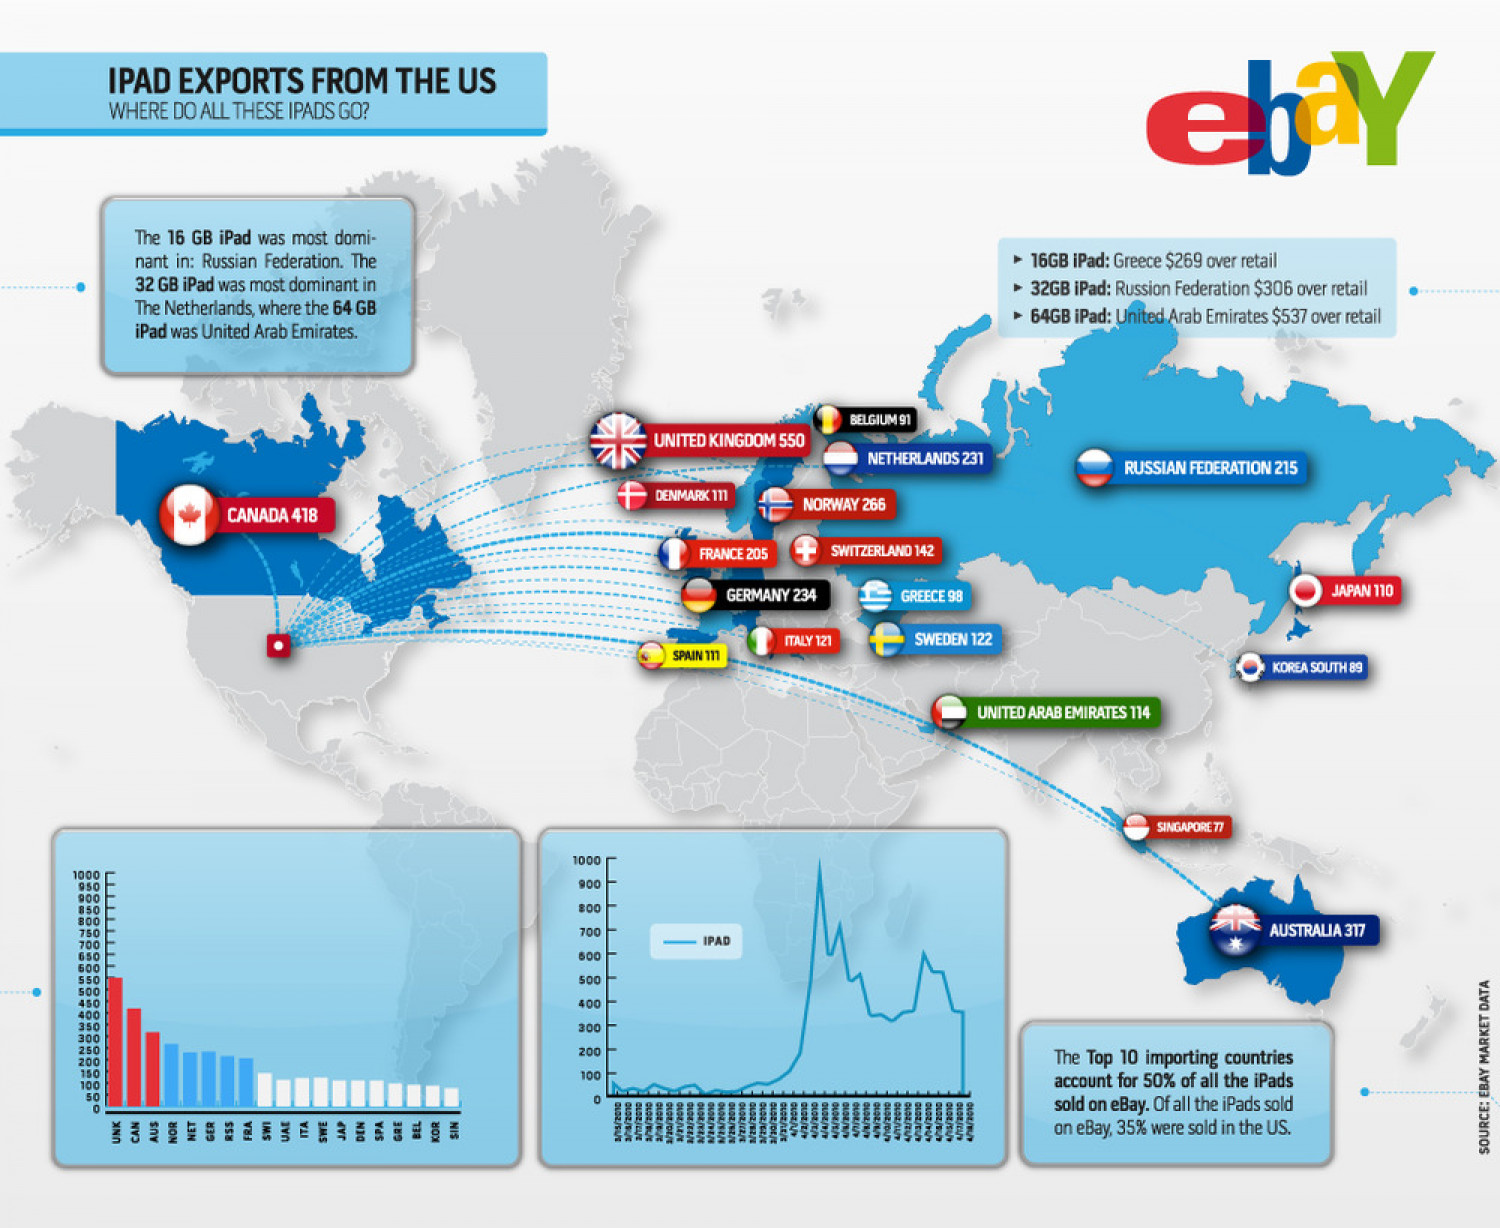 IPad Exports from the U.S: Where to all the IPads go? Infographic